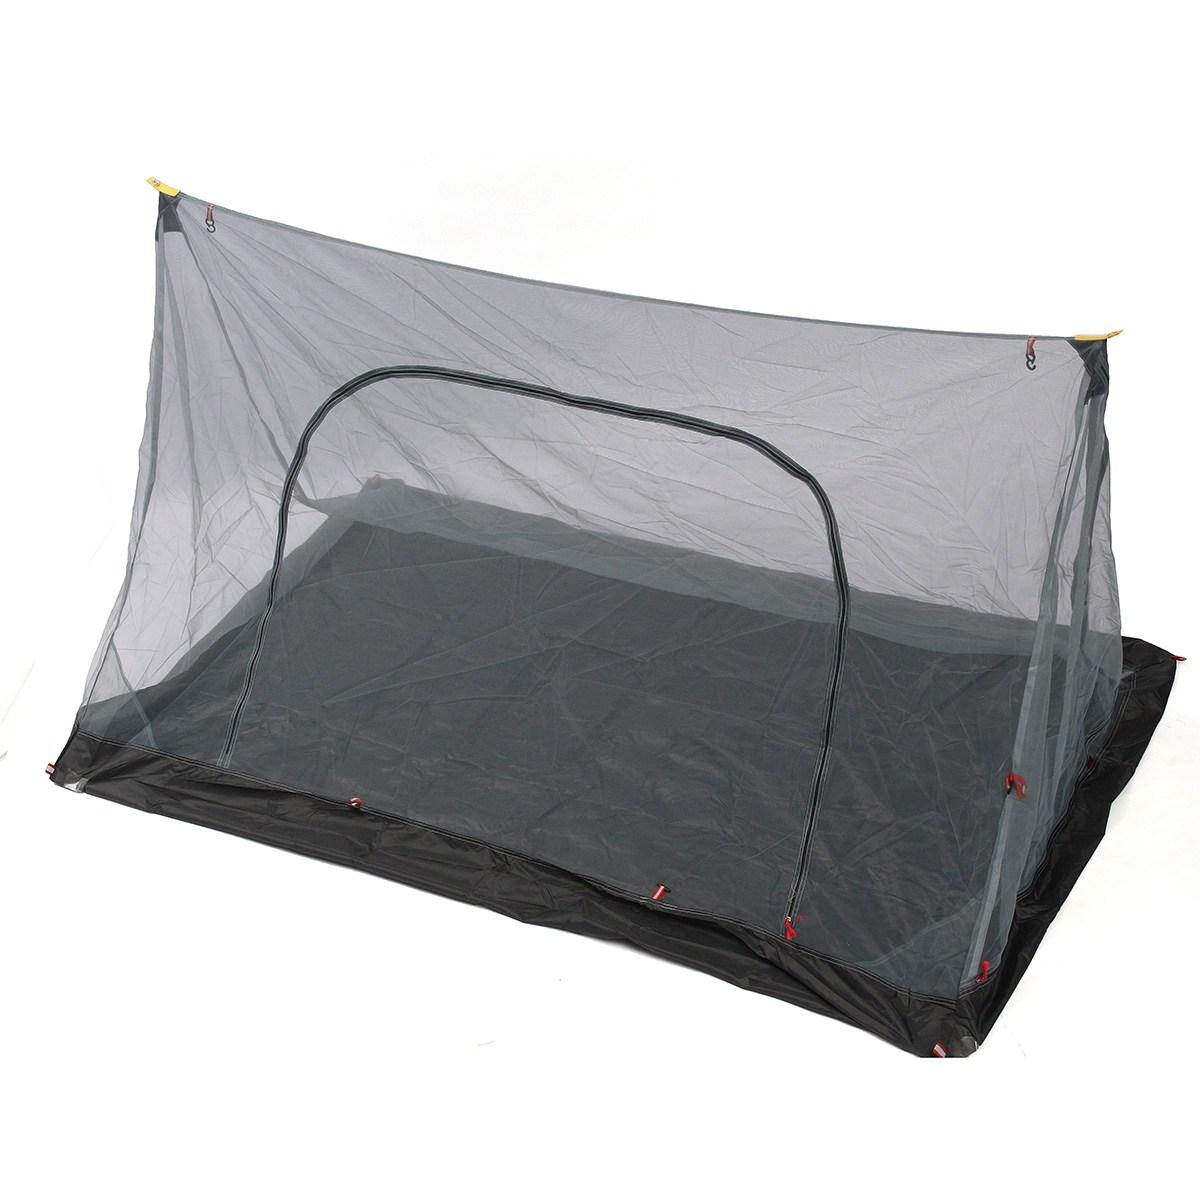 Wholesale 2 Persons Anti Mosquito Tent Sunshade Outdoor C&ing Tents Picnic Sun Shelter Canopy Sunshelter Awning Tent For C&ing Hiking Best C&ing Tents ...  sc 1 st  DHgate.com & Wholesale 2 Persons Anti Mosquito Tent Sunshade Outdoor Camping ...